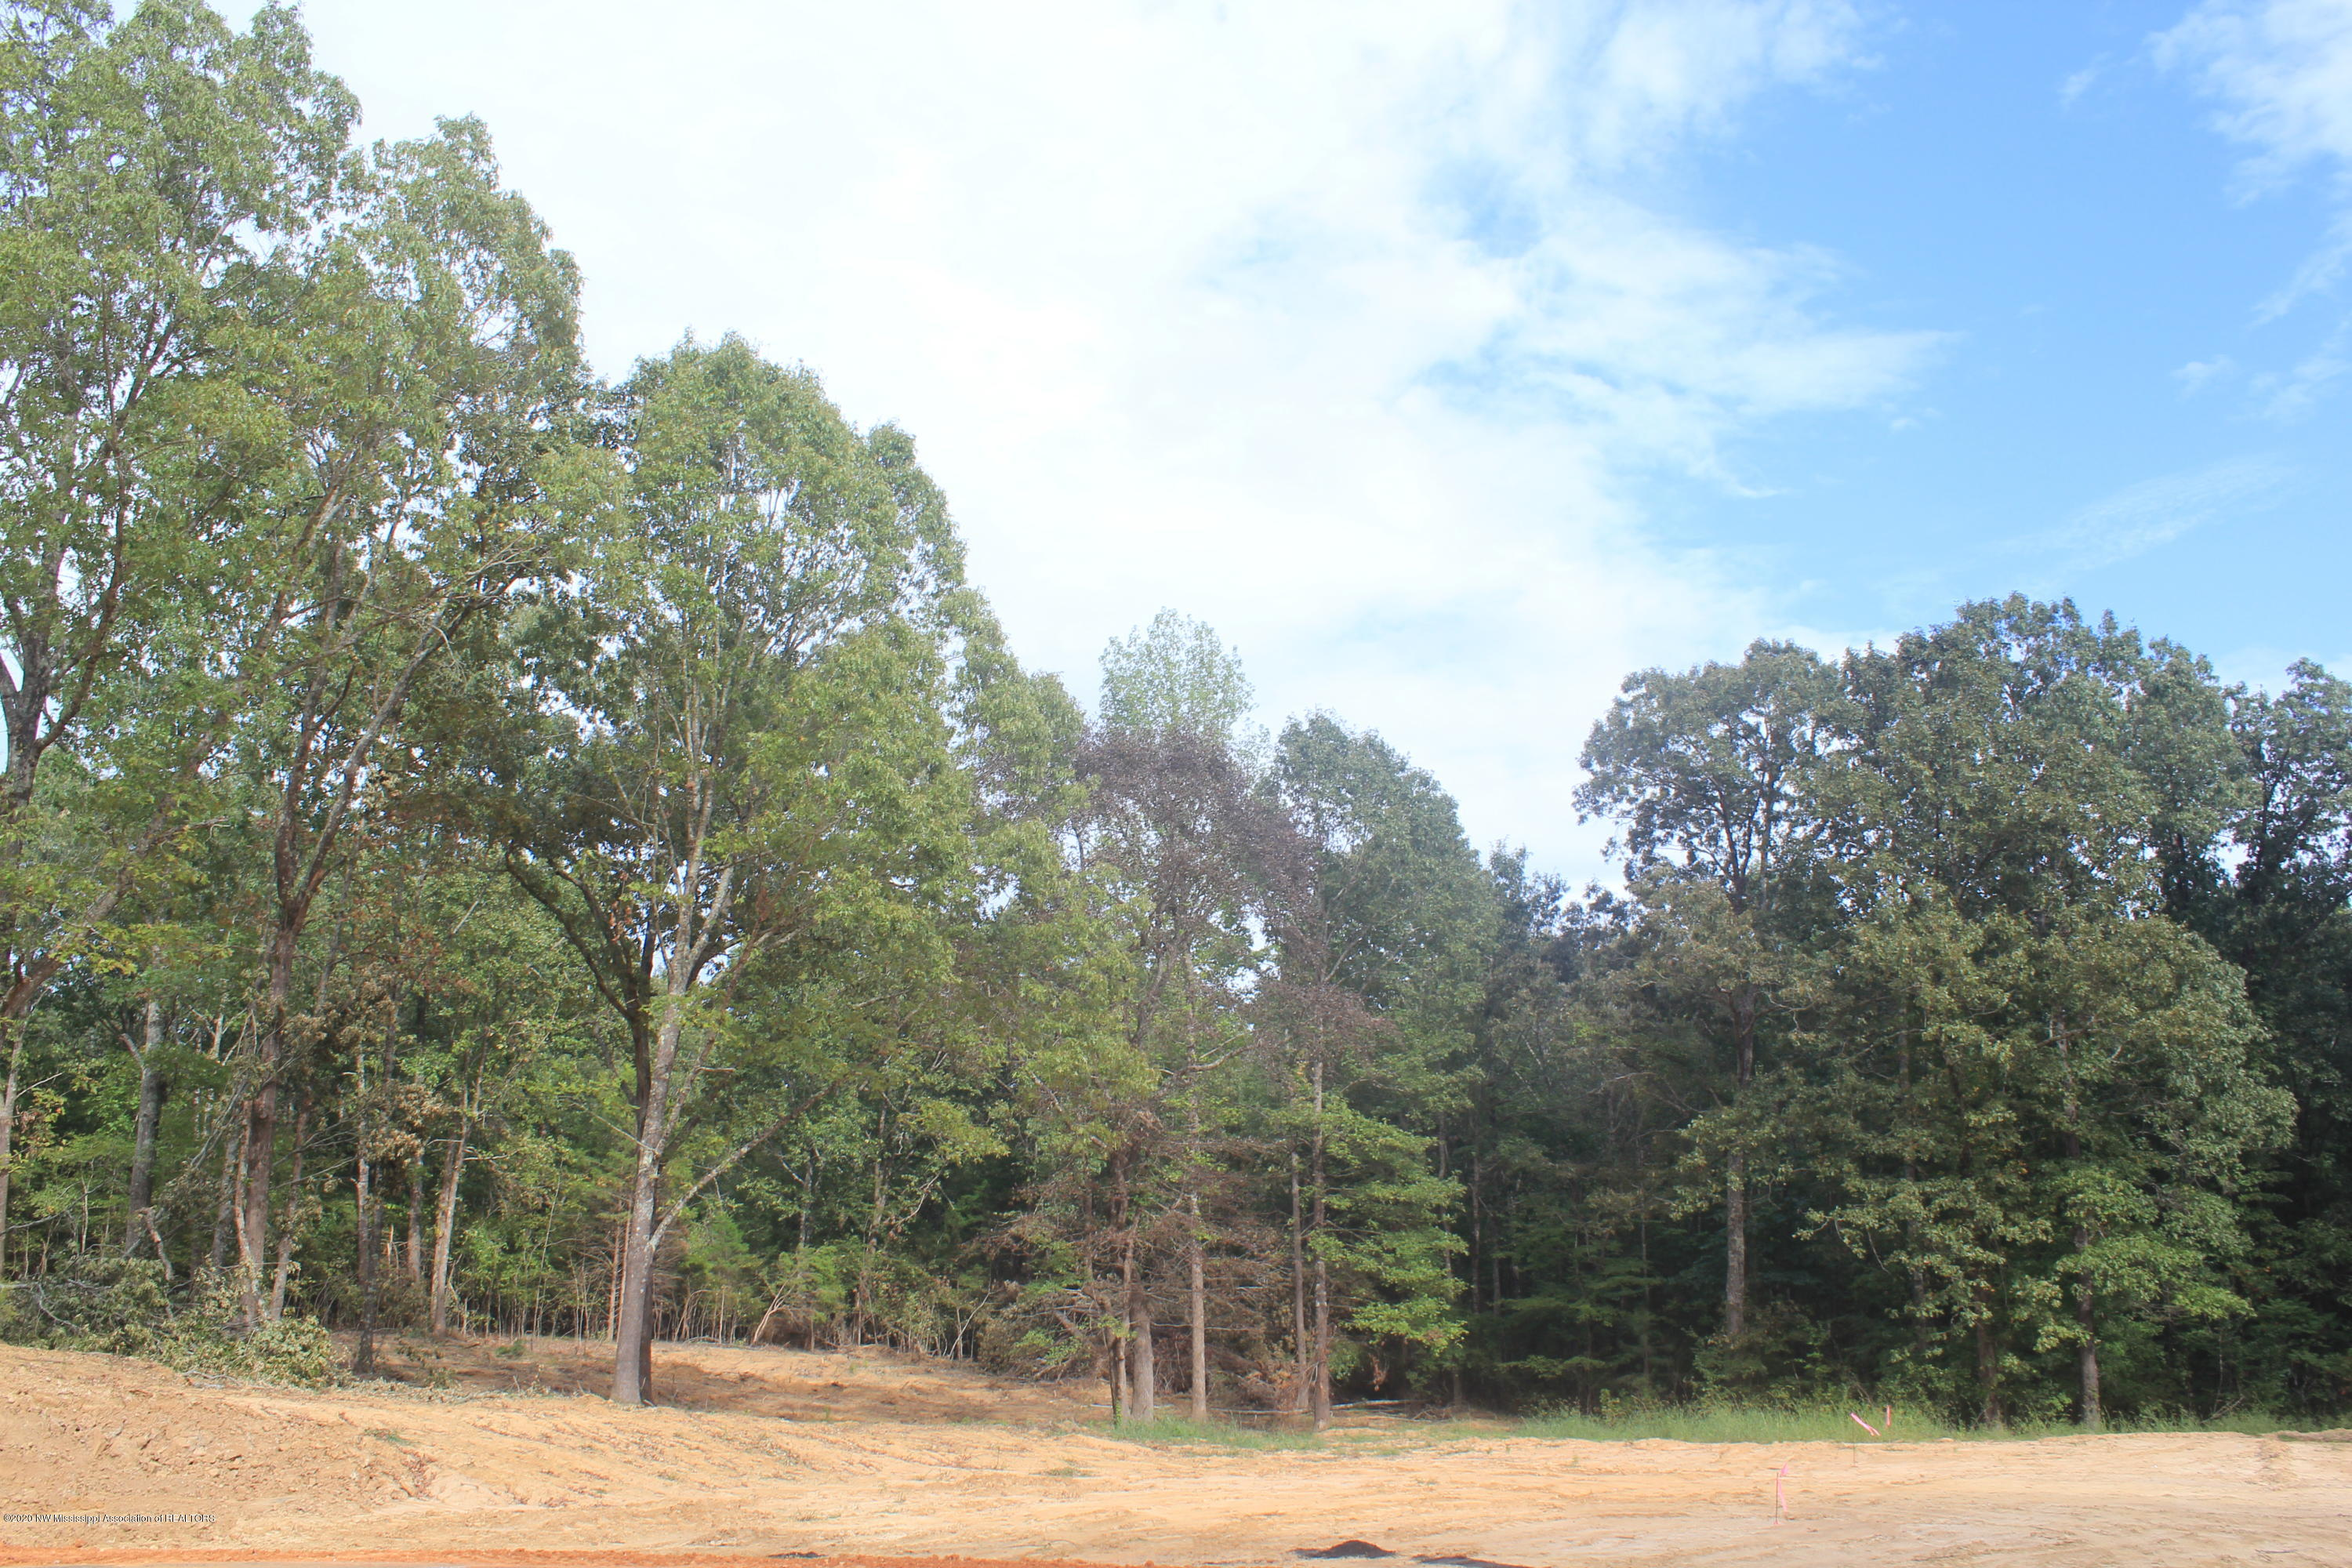 36 Hayward Drive, Marshall, Mississippi 38611, ,Land,For Sale,Hayward,331645